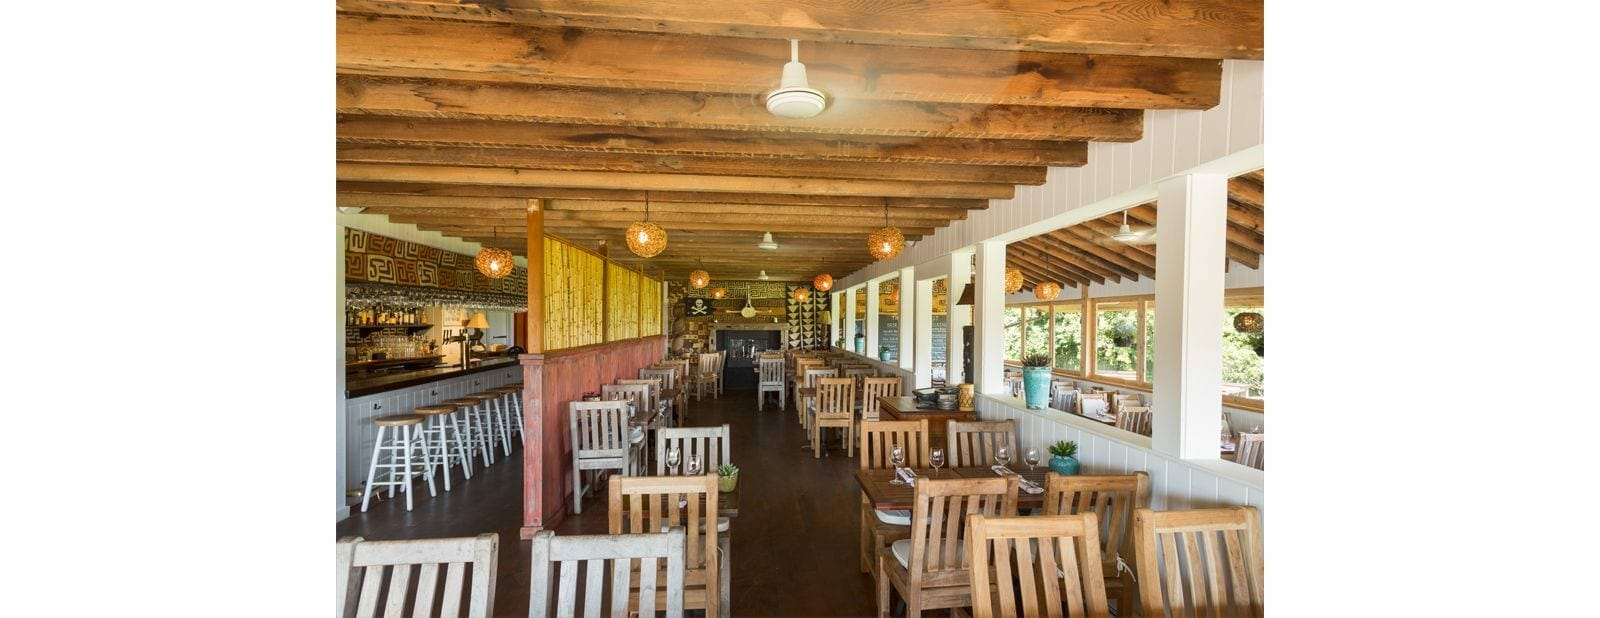 crows nest montauk dining room